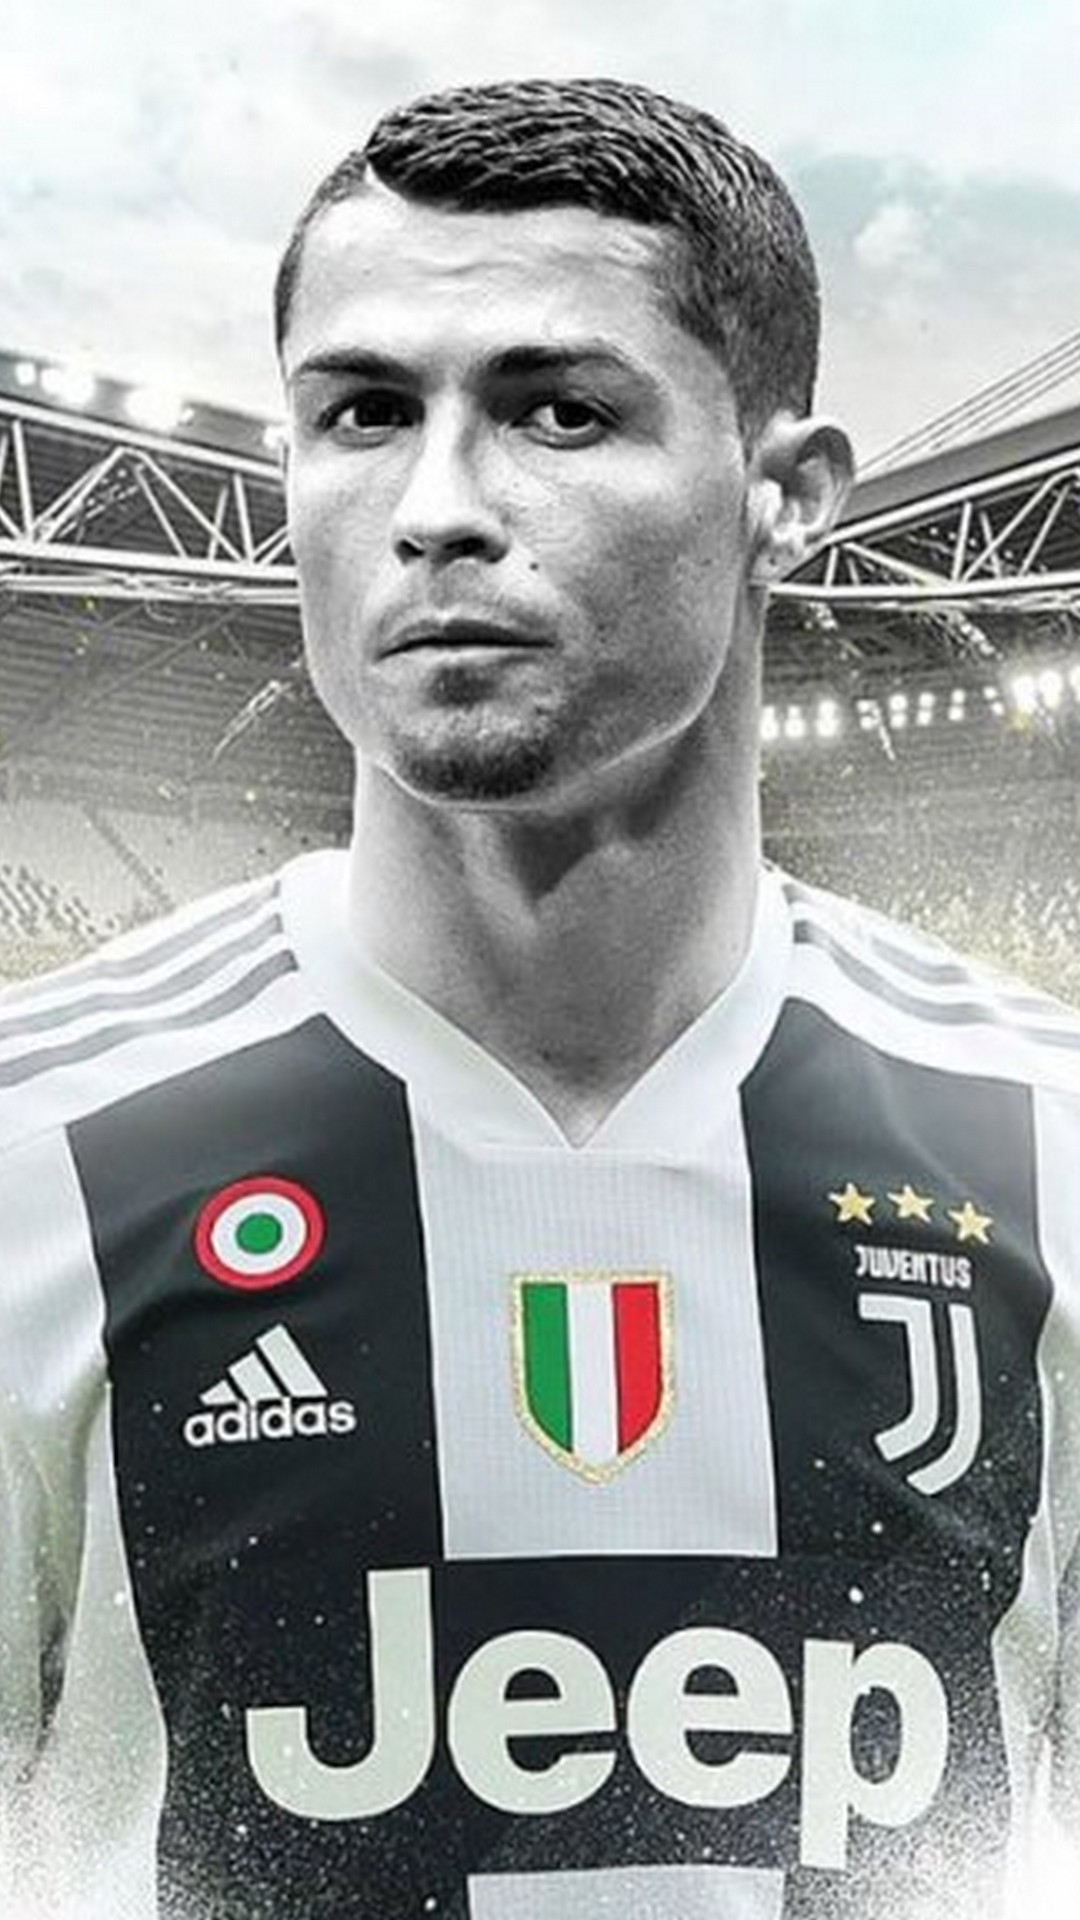 Cr7 Hd Wallpaper Posted By John Cunningham